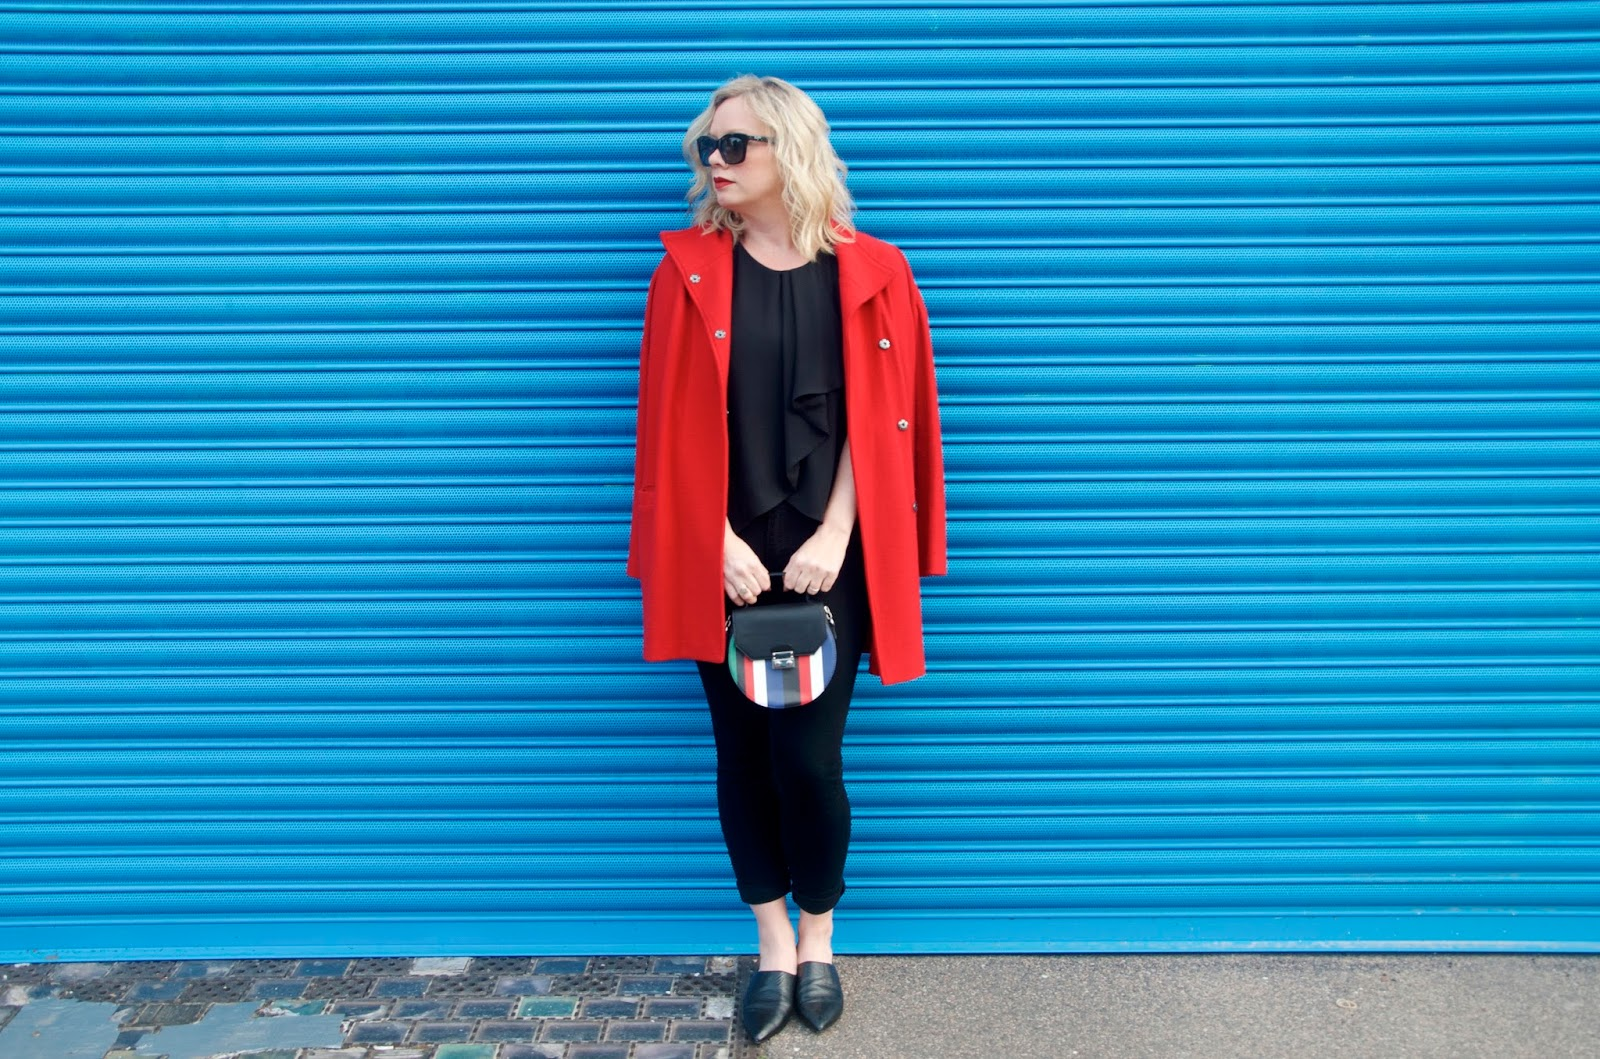 blue wall, red coat, striped bag and all black outfit